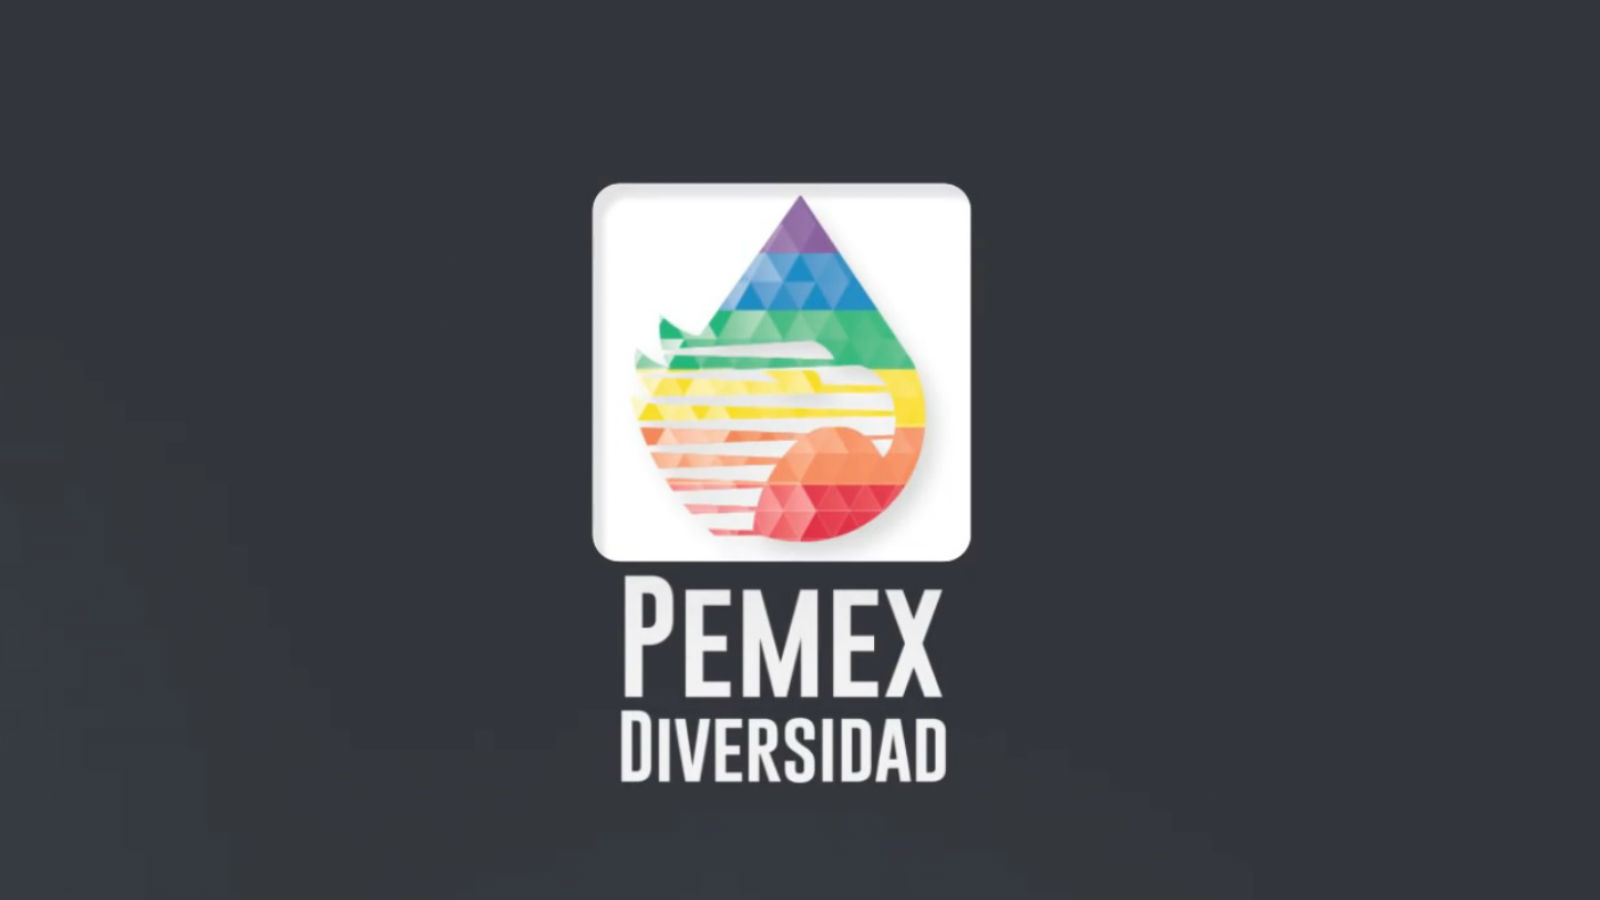 One of the Largest Companies in Mexico Celebrates LGBTQ Employees